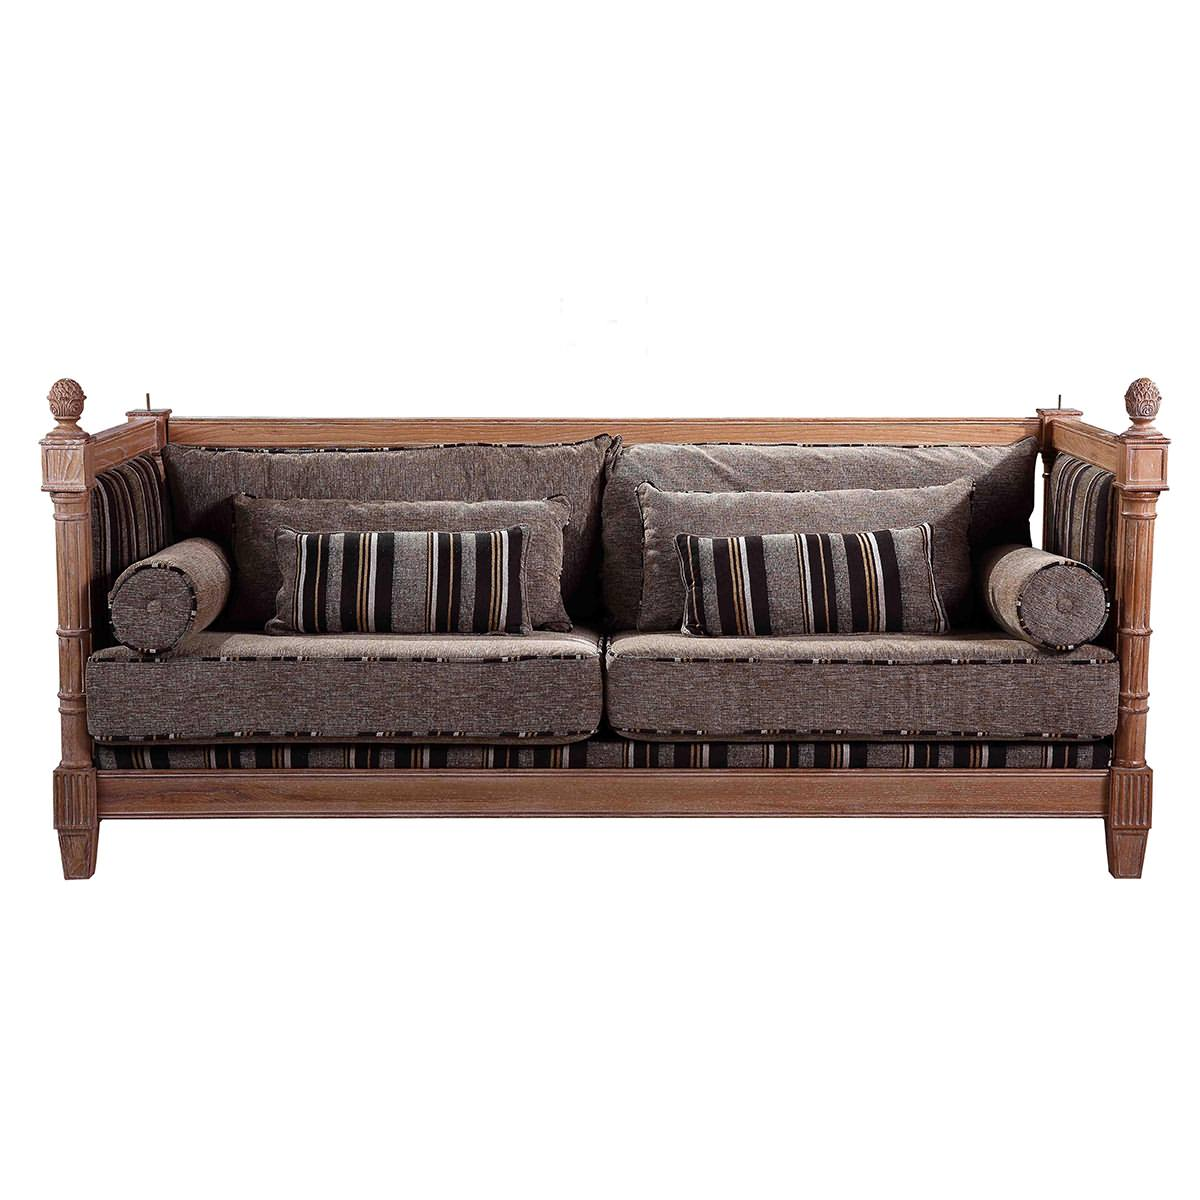 Classic style sofa|Solid wood Sofa|Living room Furniture